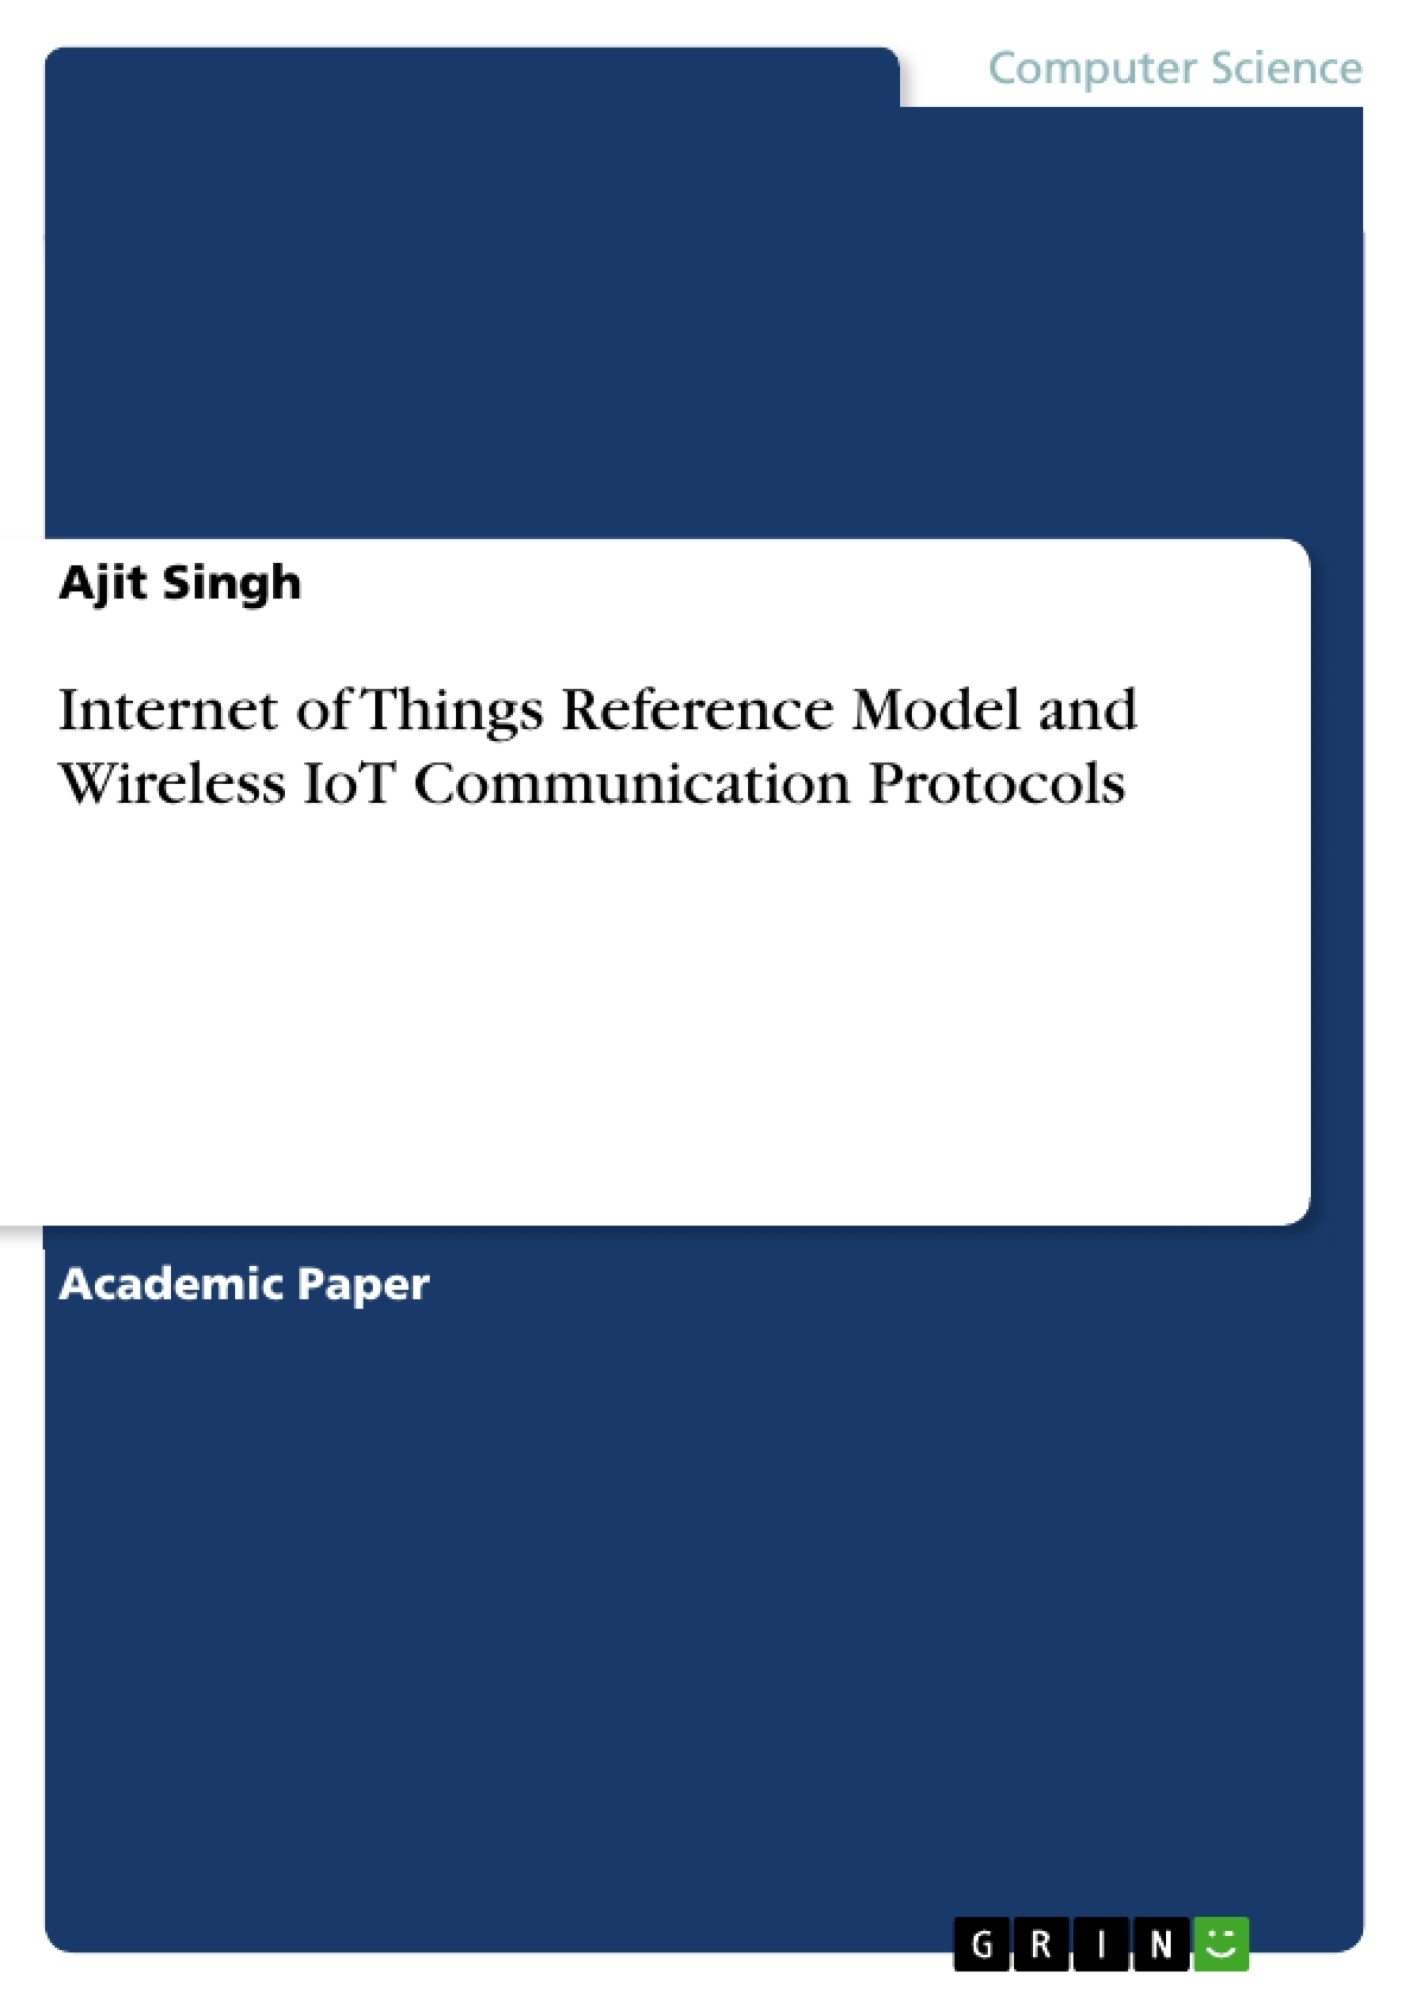 Title: Internet of Things  Reference Model and Wireless IoT Communication Protocols